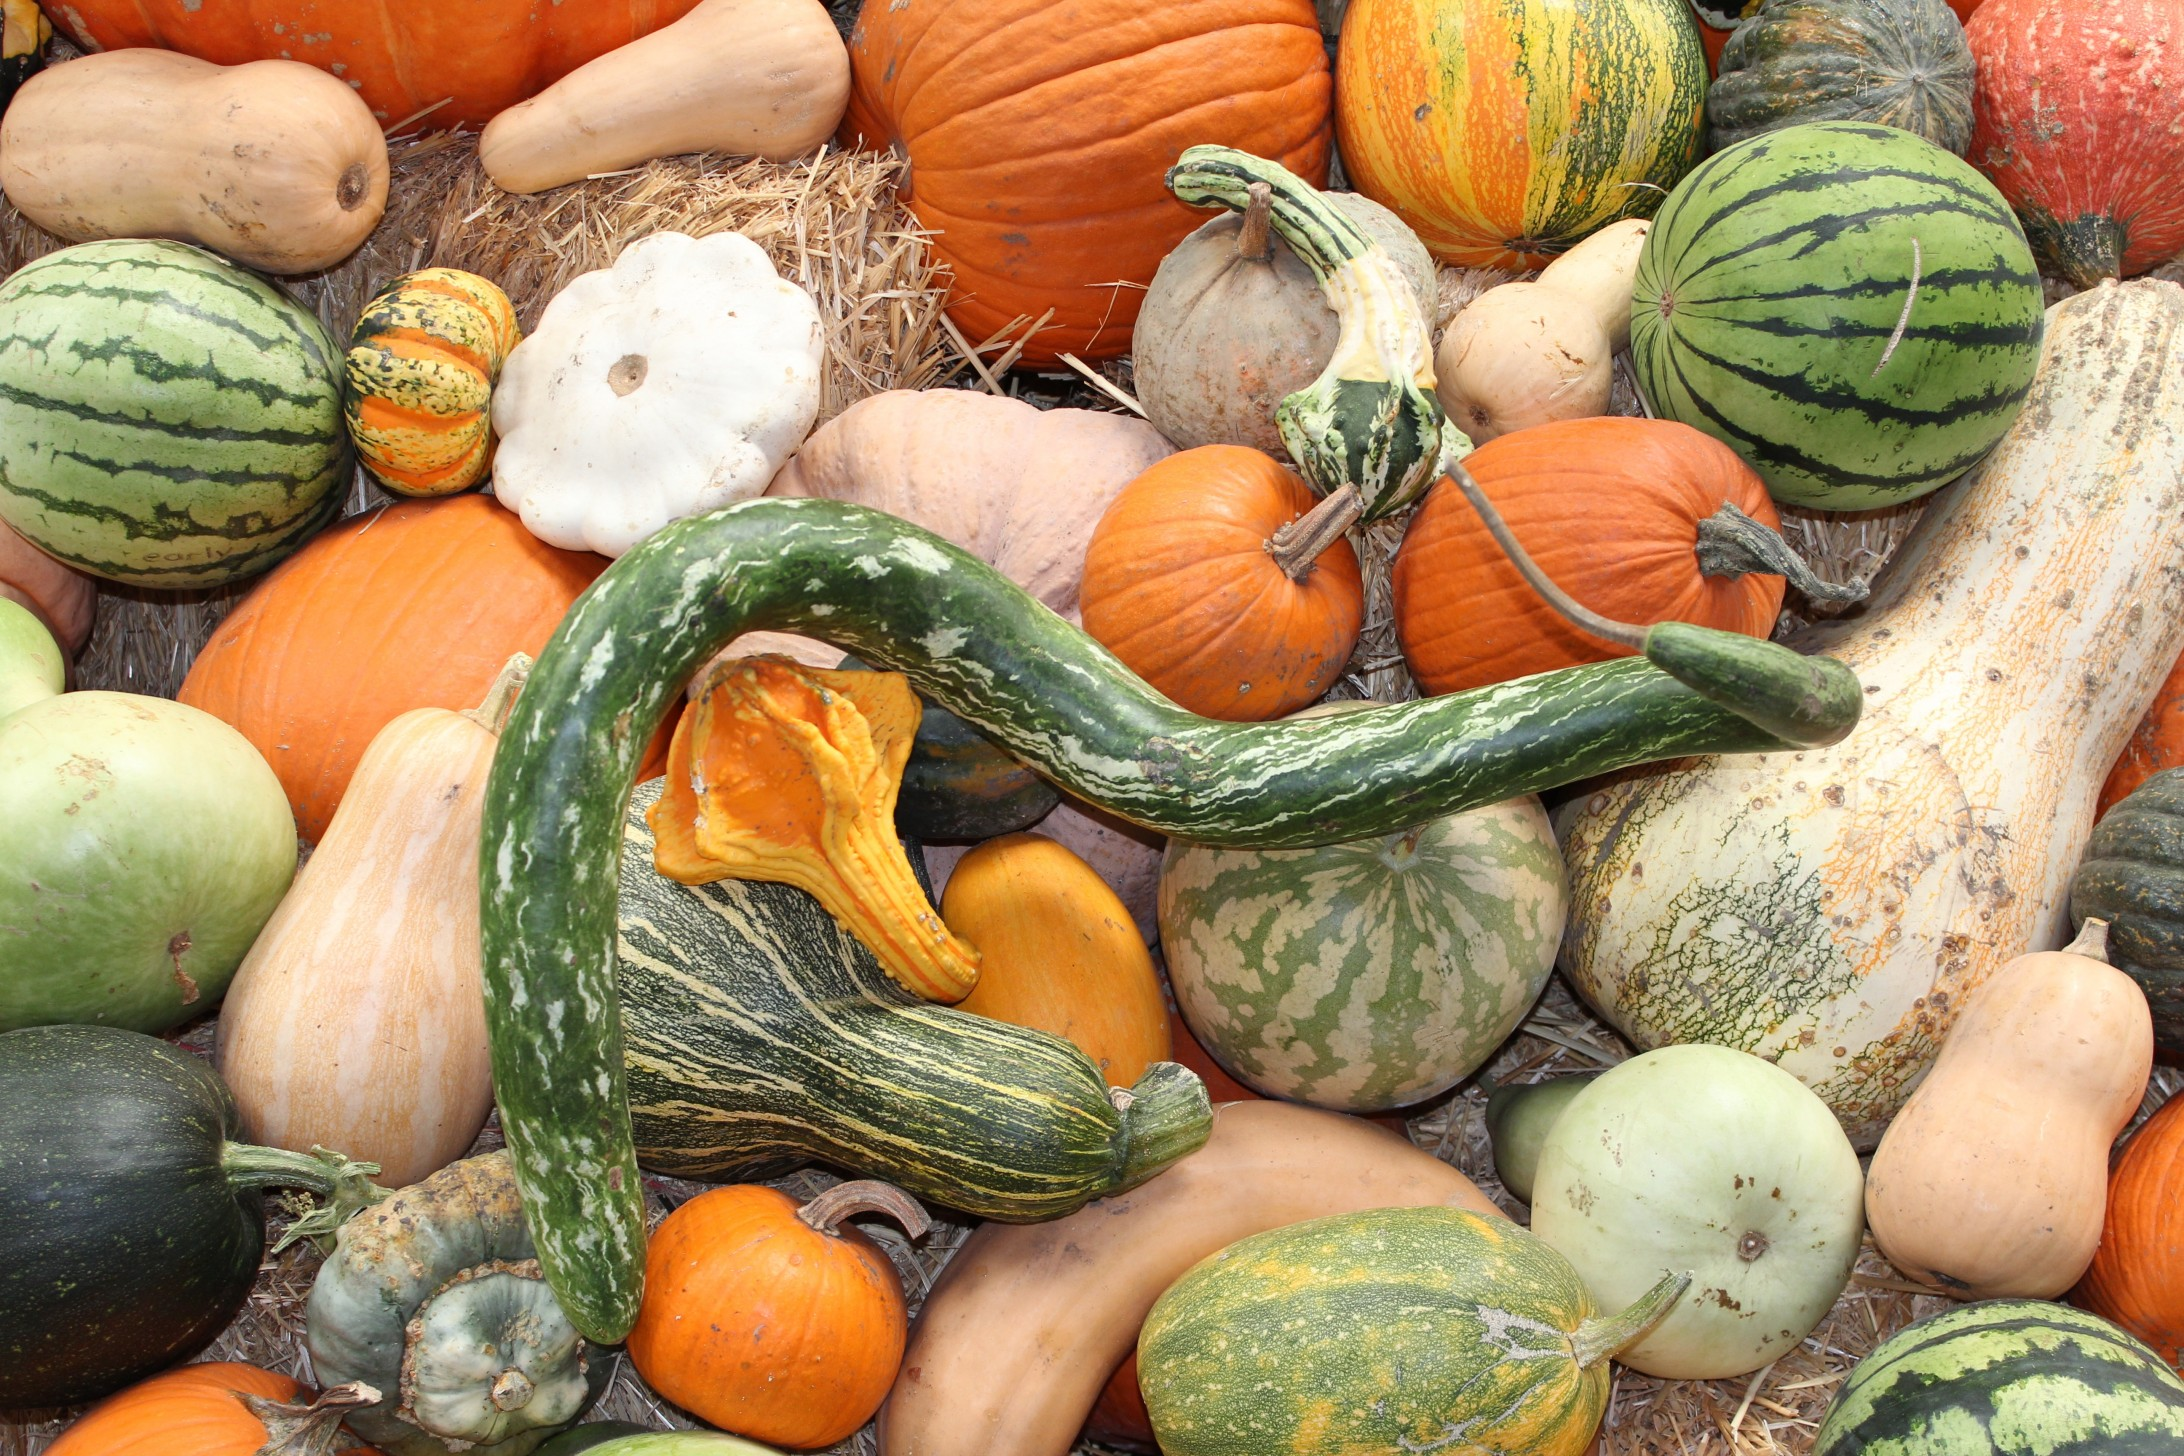 Image of fall vegetables from CALMERme.com